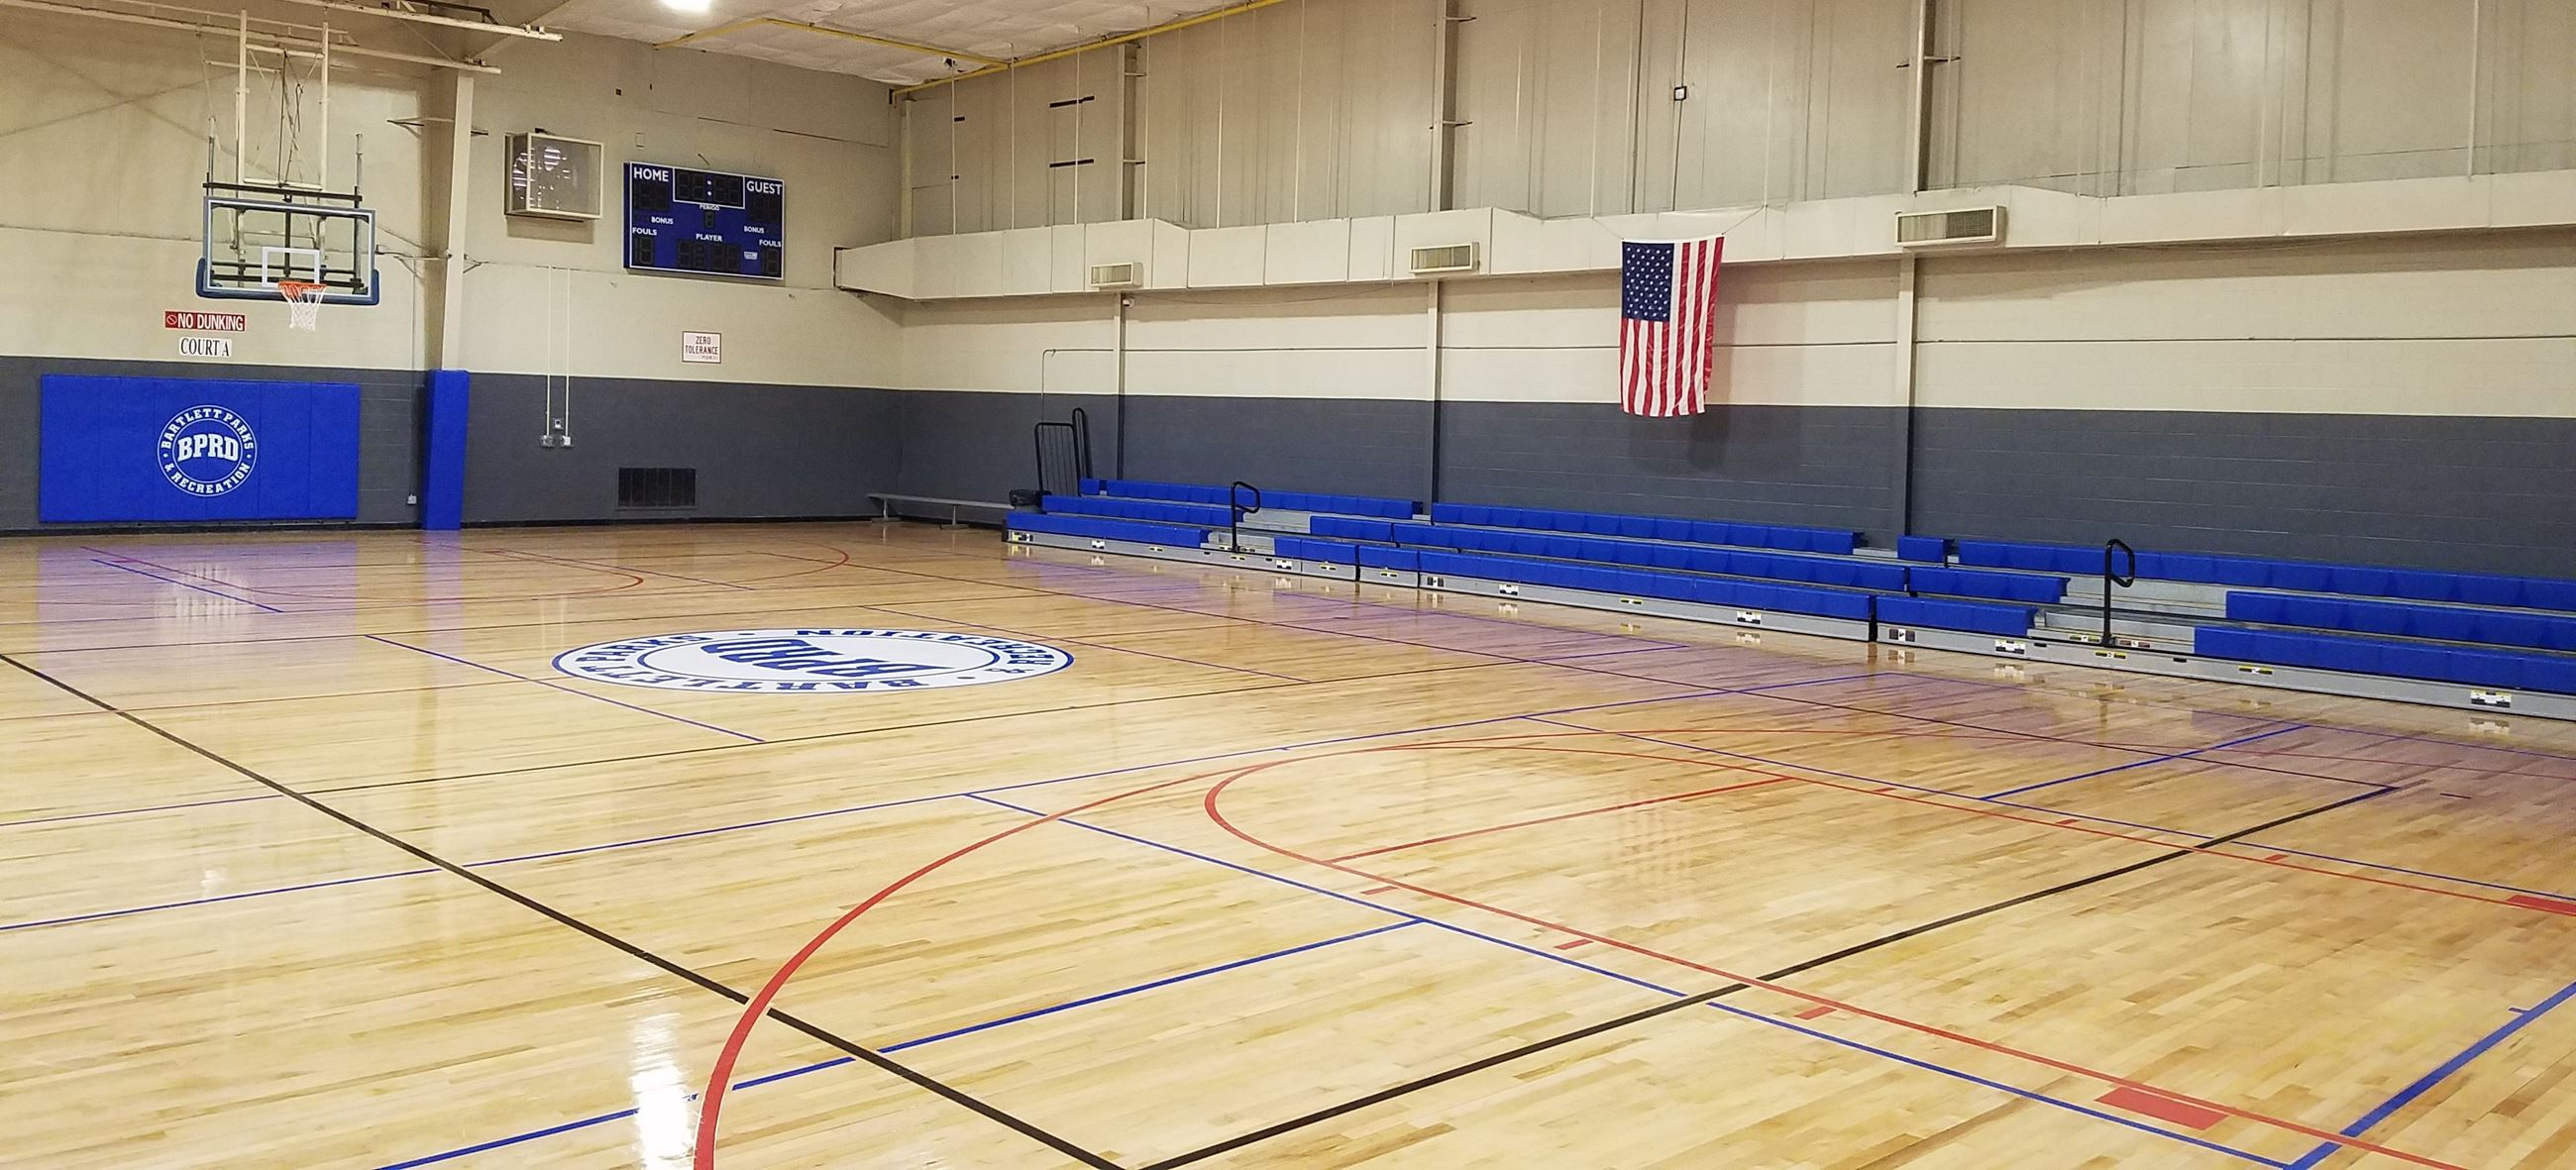 Gym Pic new floor pads and paint